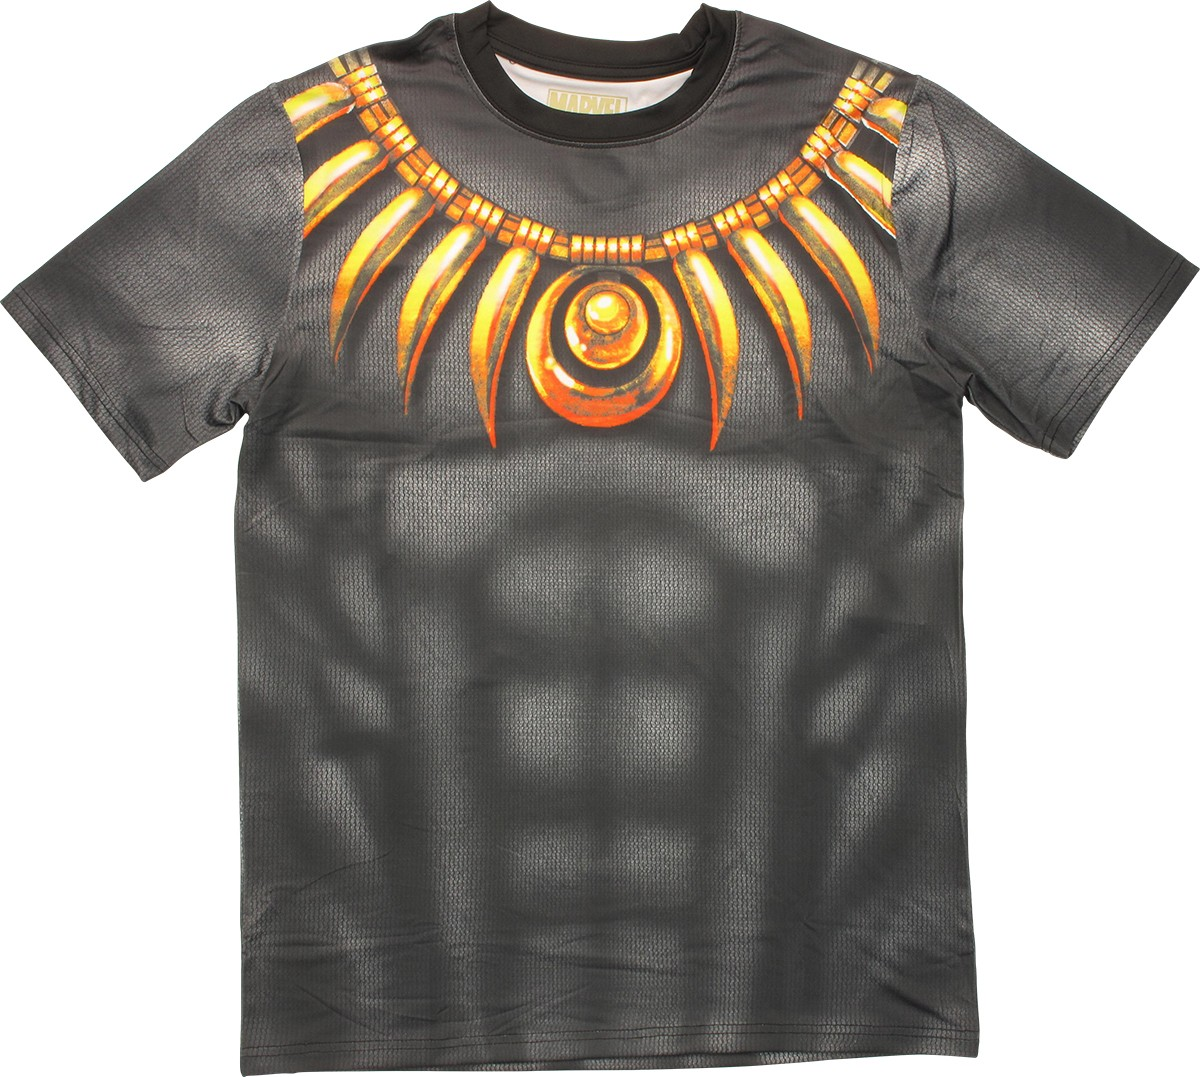 Contact Us Shipping Information Returns Exchanges: www.stylinonline.com/t-shirt-black-panther-costume-dye-shr.html